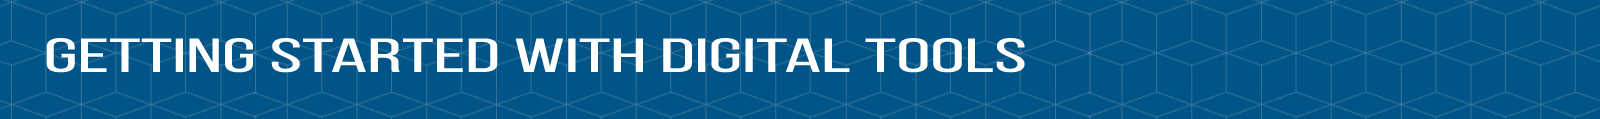 """Header image reading """"Getting Started with Digital Tools"""""""